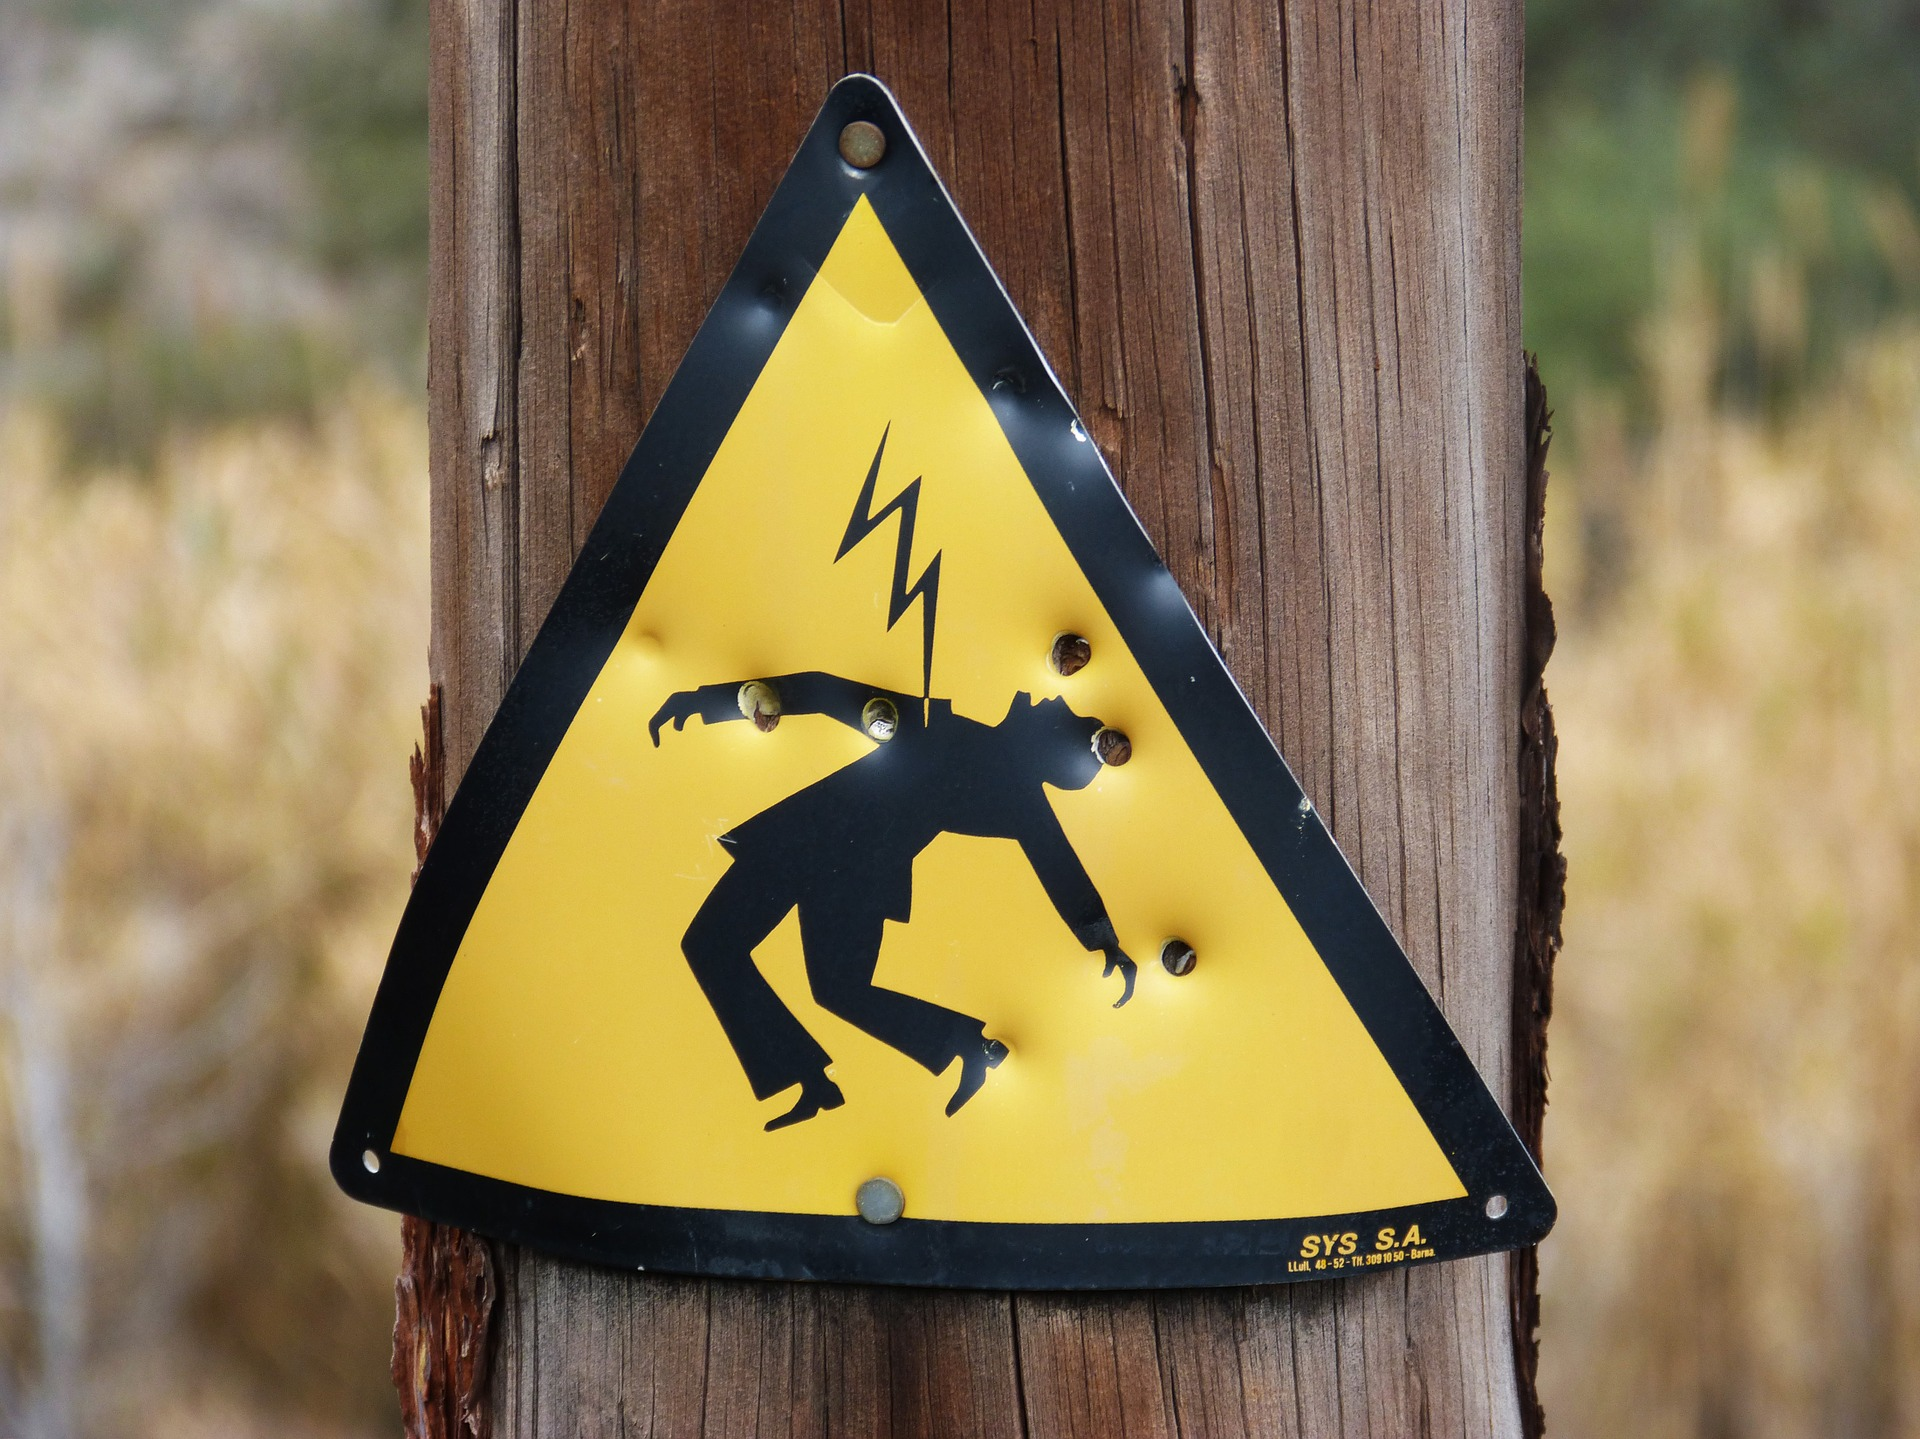 triangular yellow electrical shock sign stapled onto a brown wooden pole